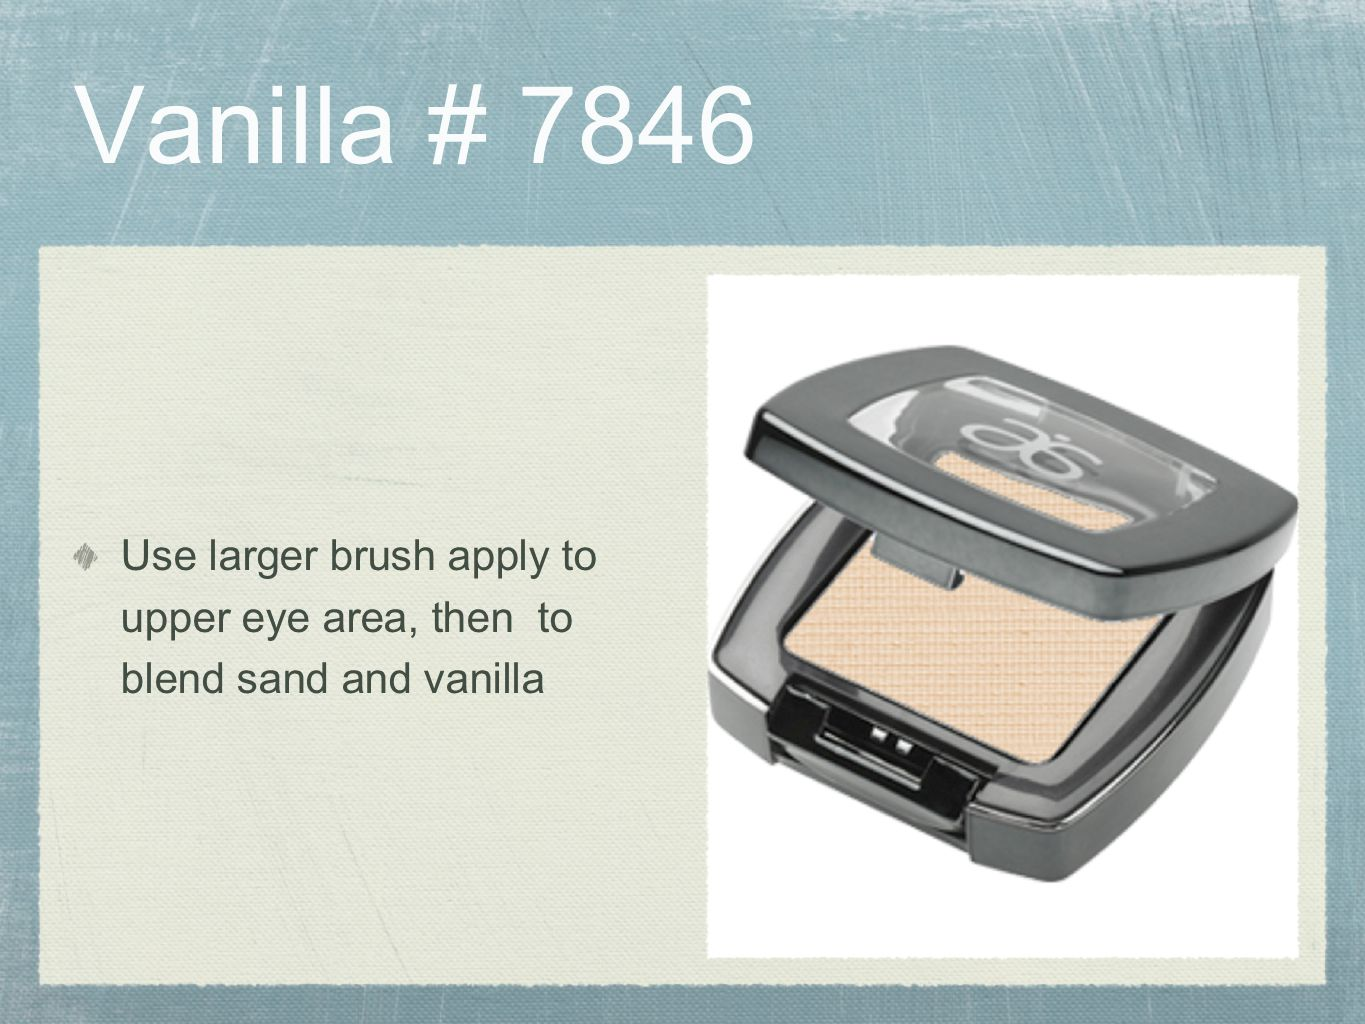 Vanilla # 7846 Use larger brush apply to upper eye area, then to blend sand and vanilla